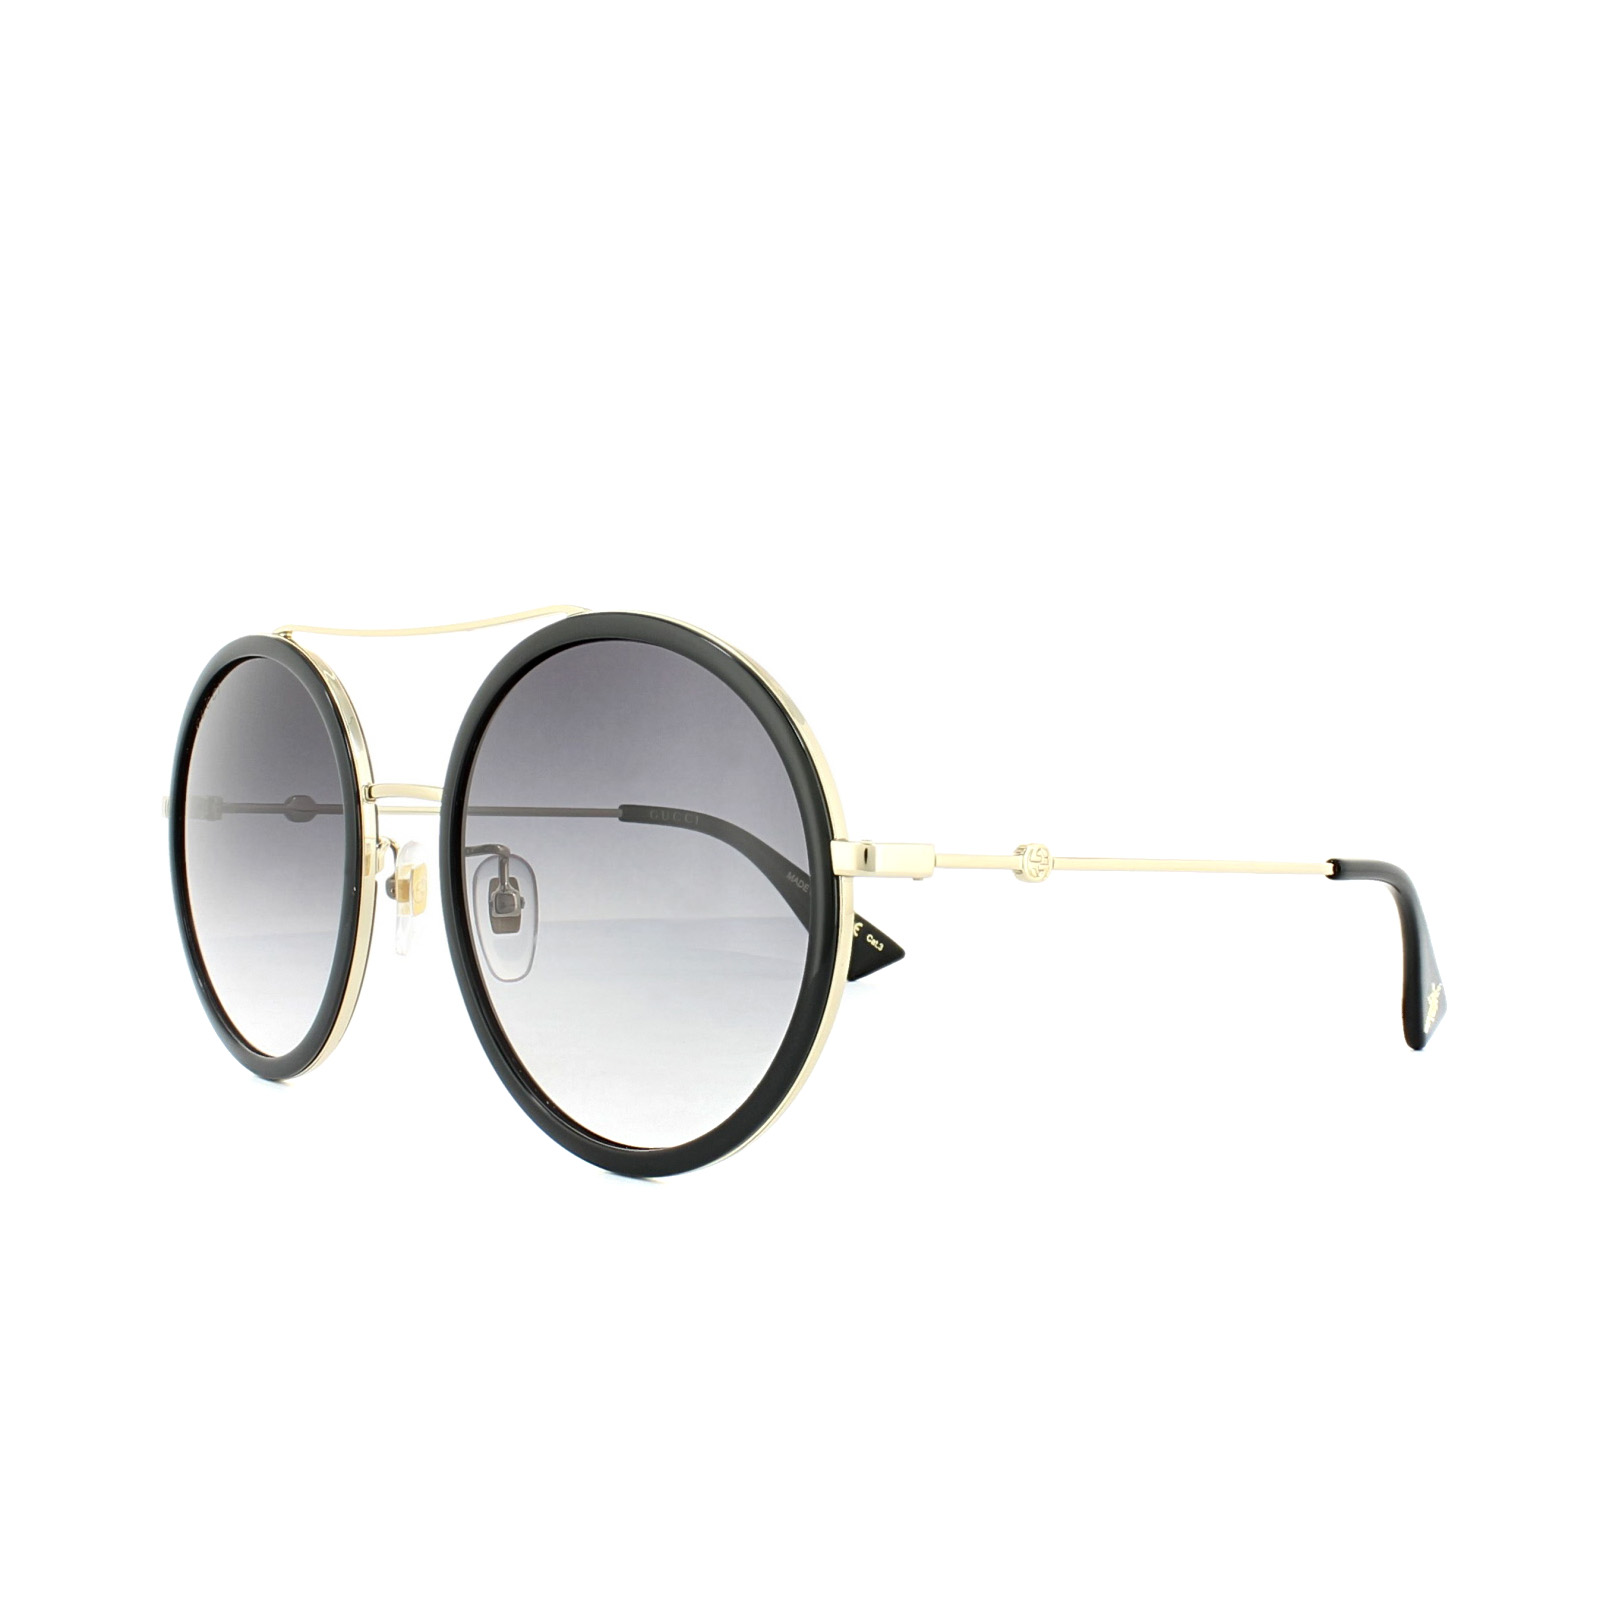 9bfe07a3ee Sentinel Gucci Sunglasses GG0061S 001 Black Gold Grey Gradient